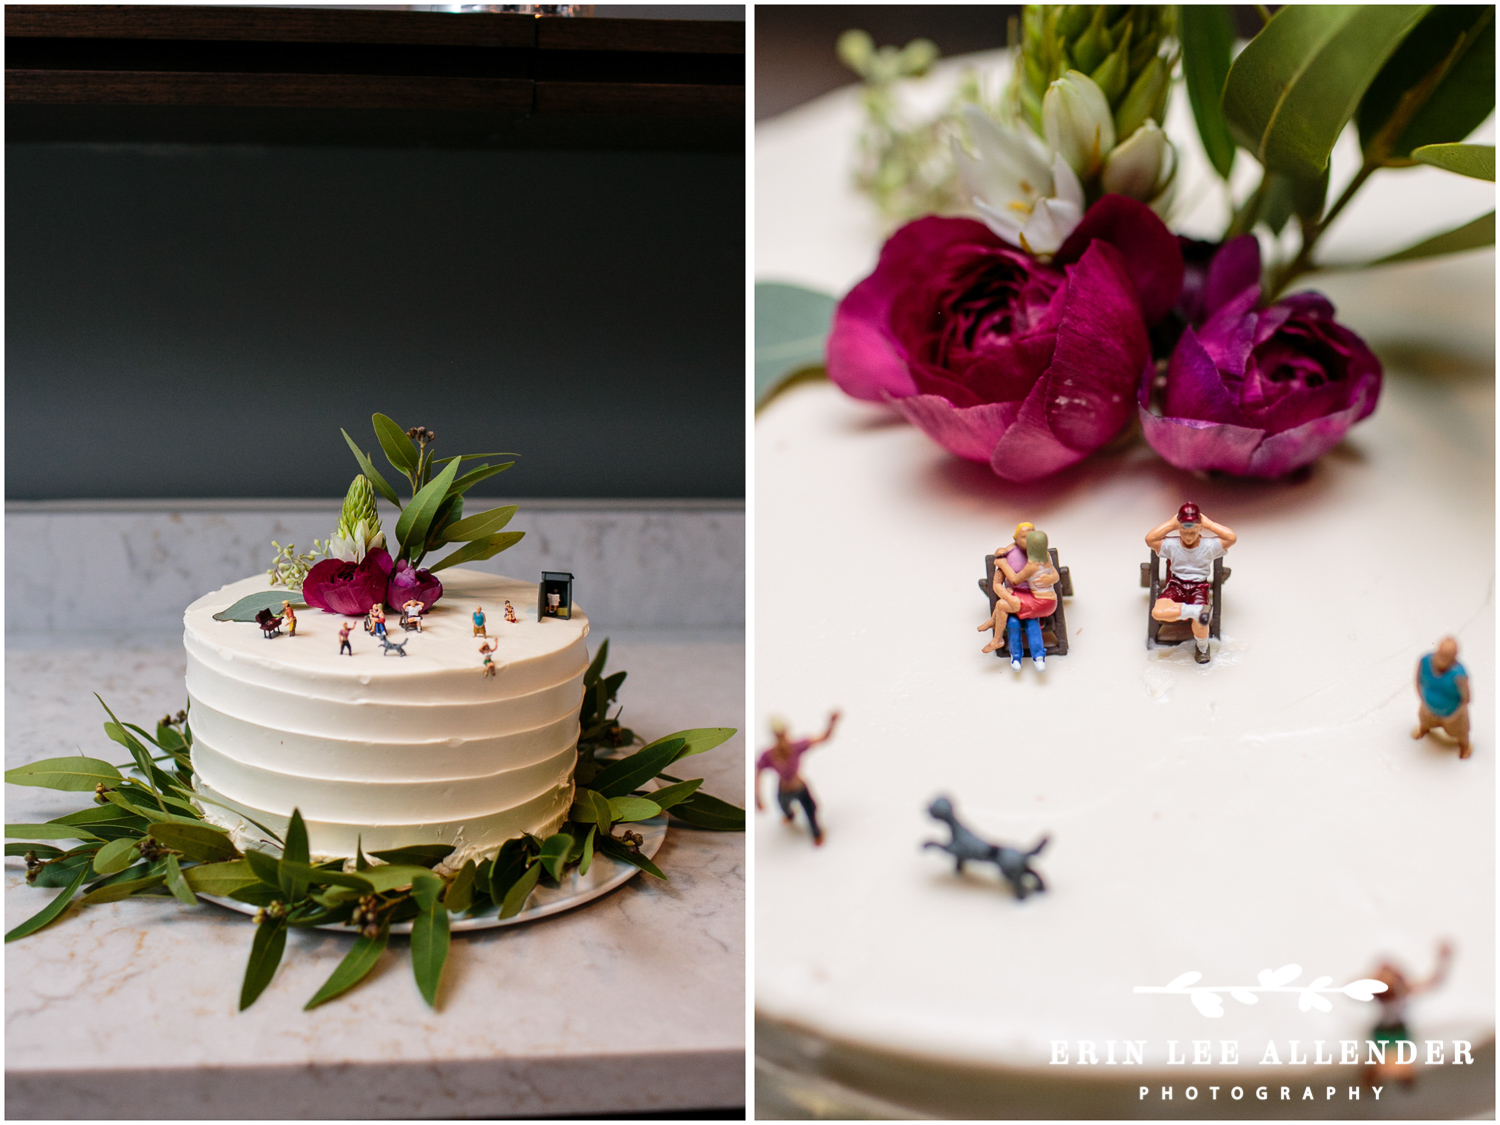 Cake_With_Funny_Figurines